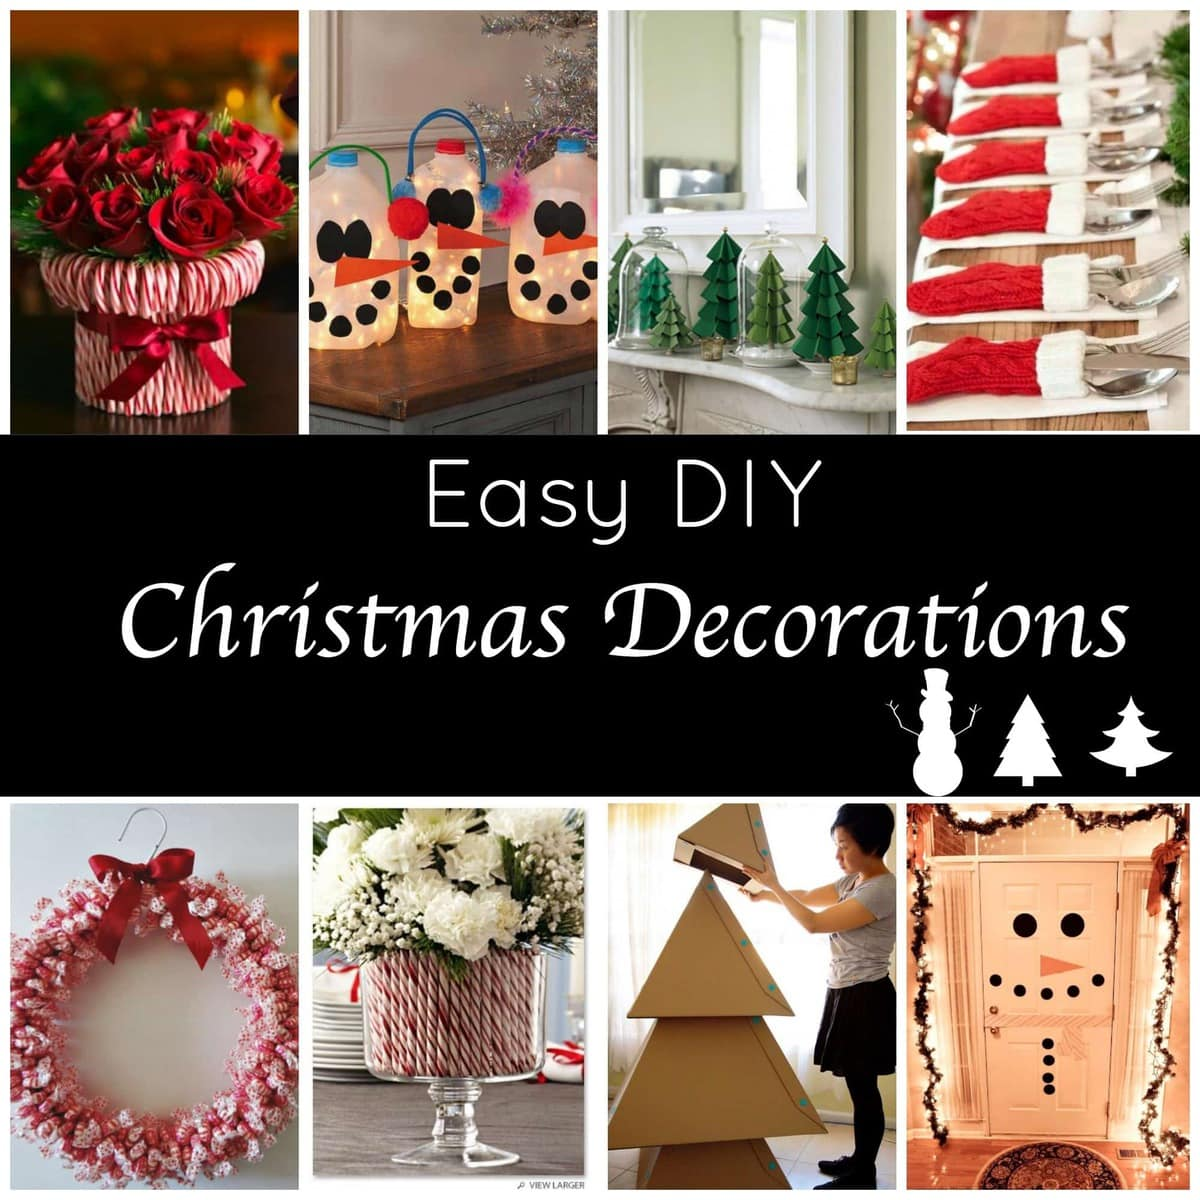 Christmas Decorations Holiday Decorations Decor: Cute And Easy DIY Holiday Decorations For A Festive Home